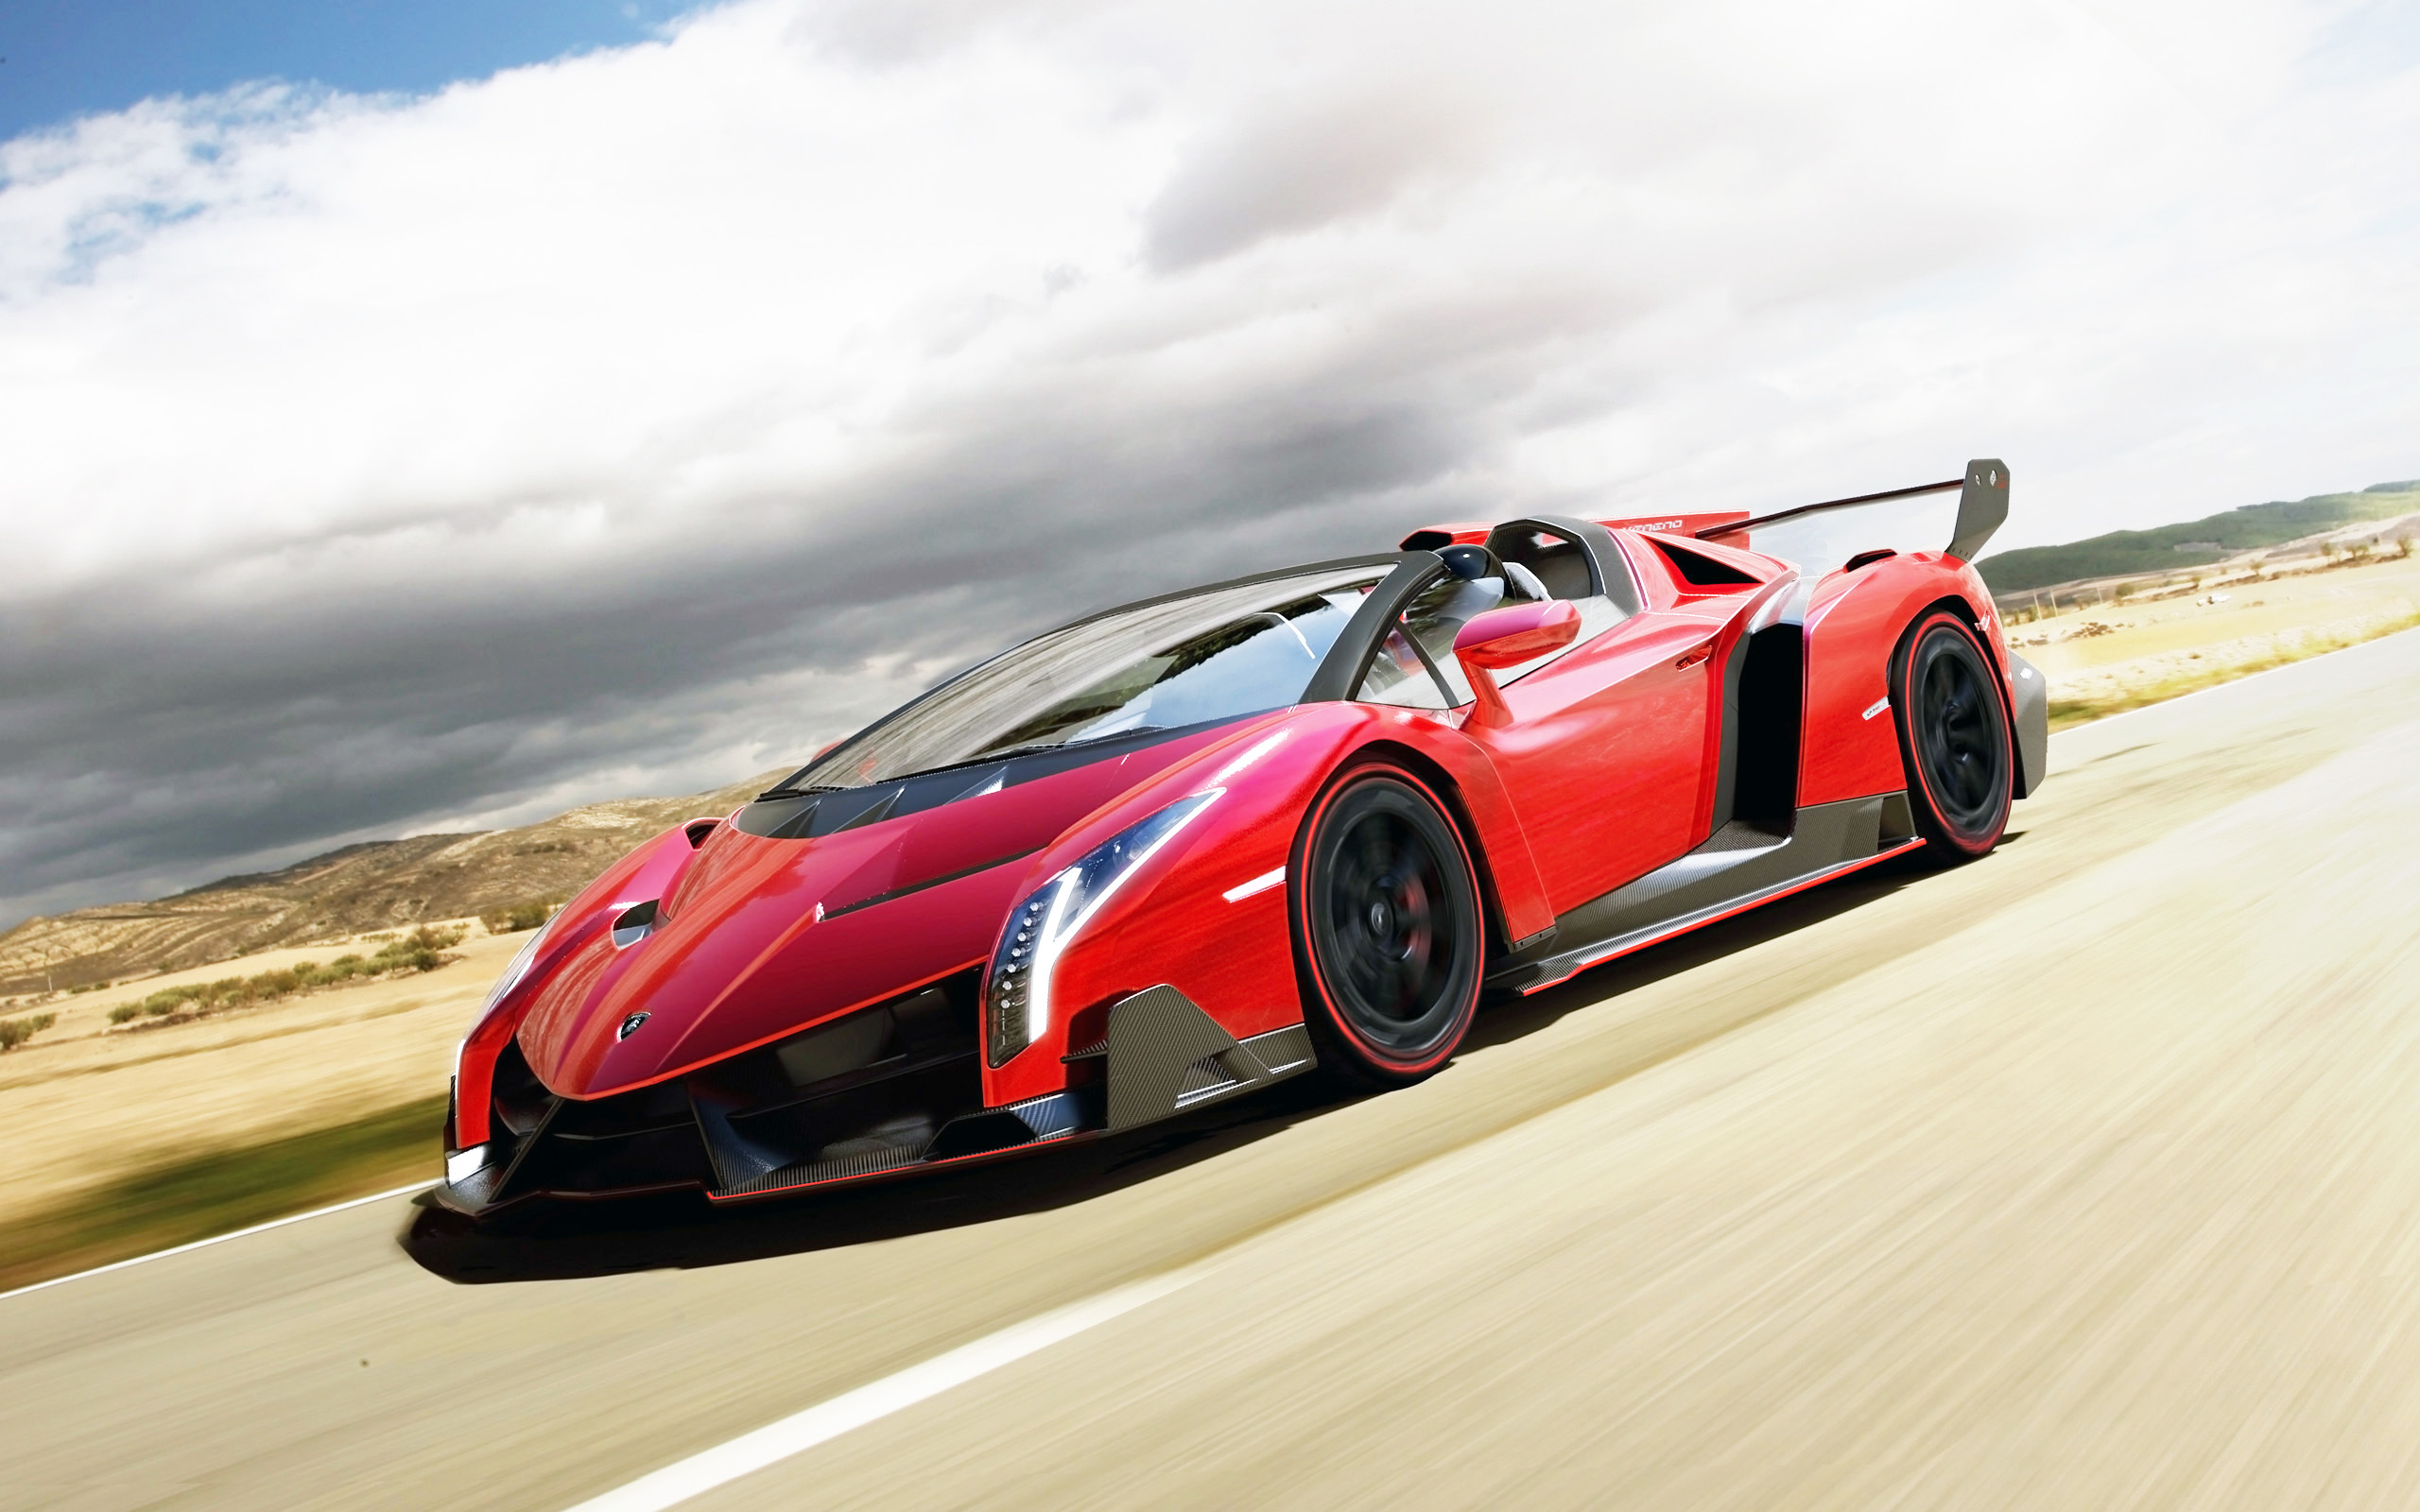 Veneno 4k Wallpapers For Your Desktop Or Mobile Screen Free And Easy